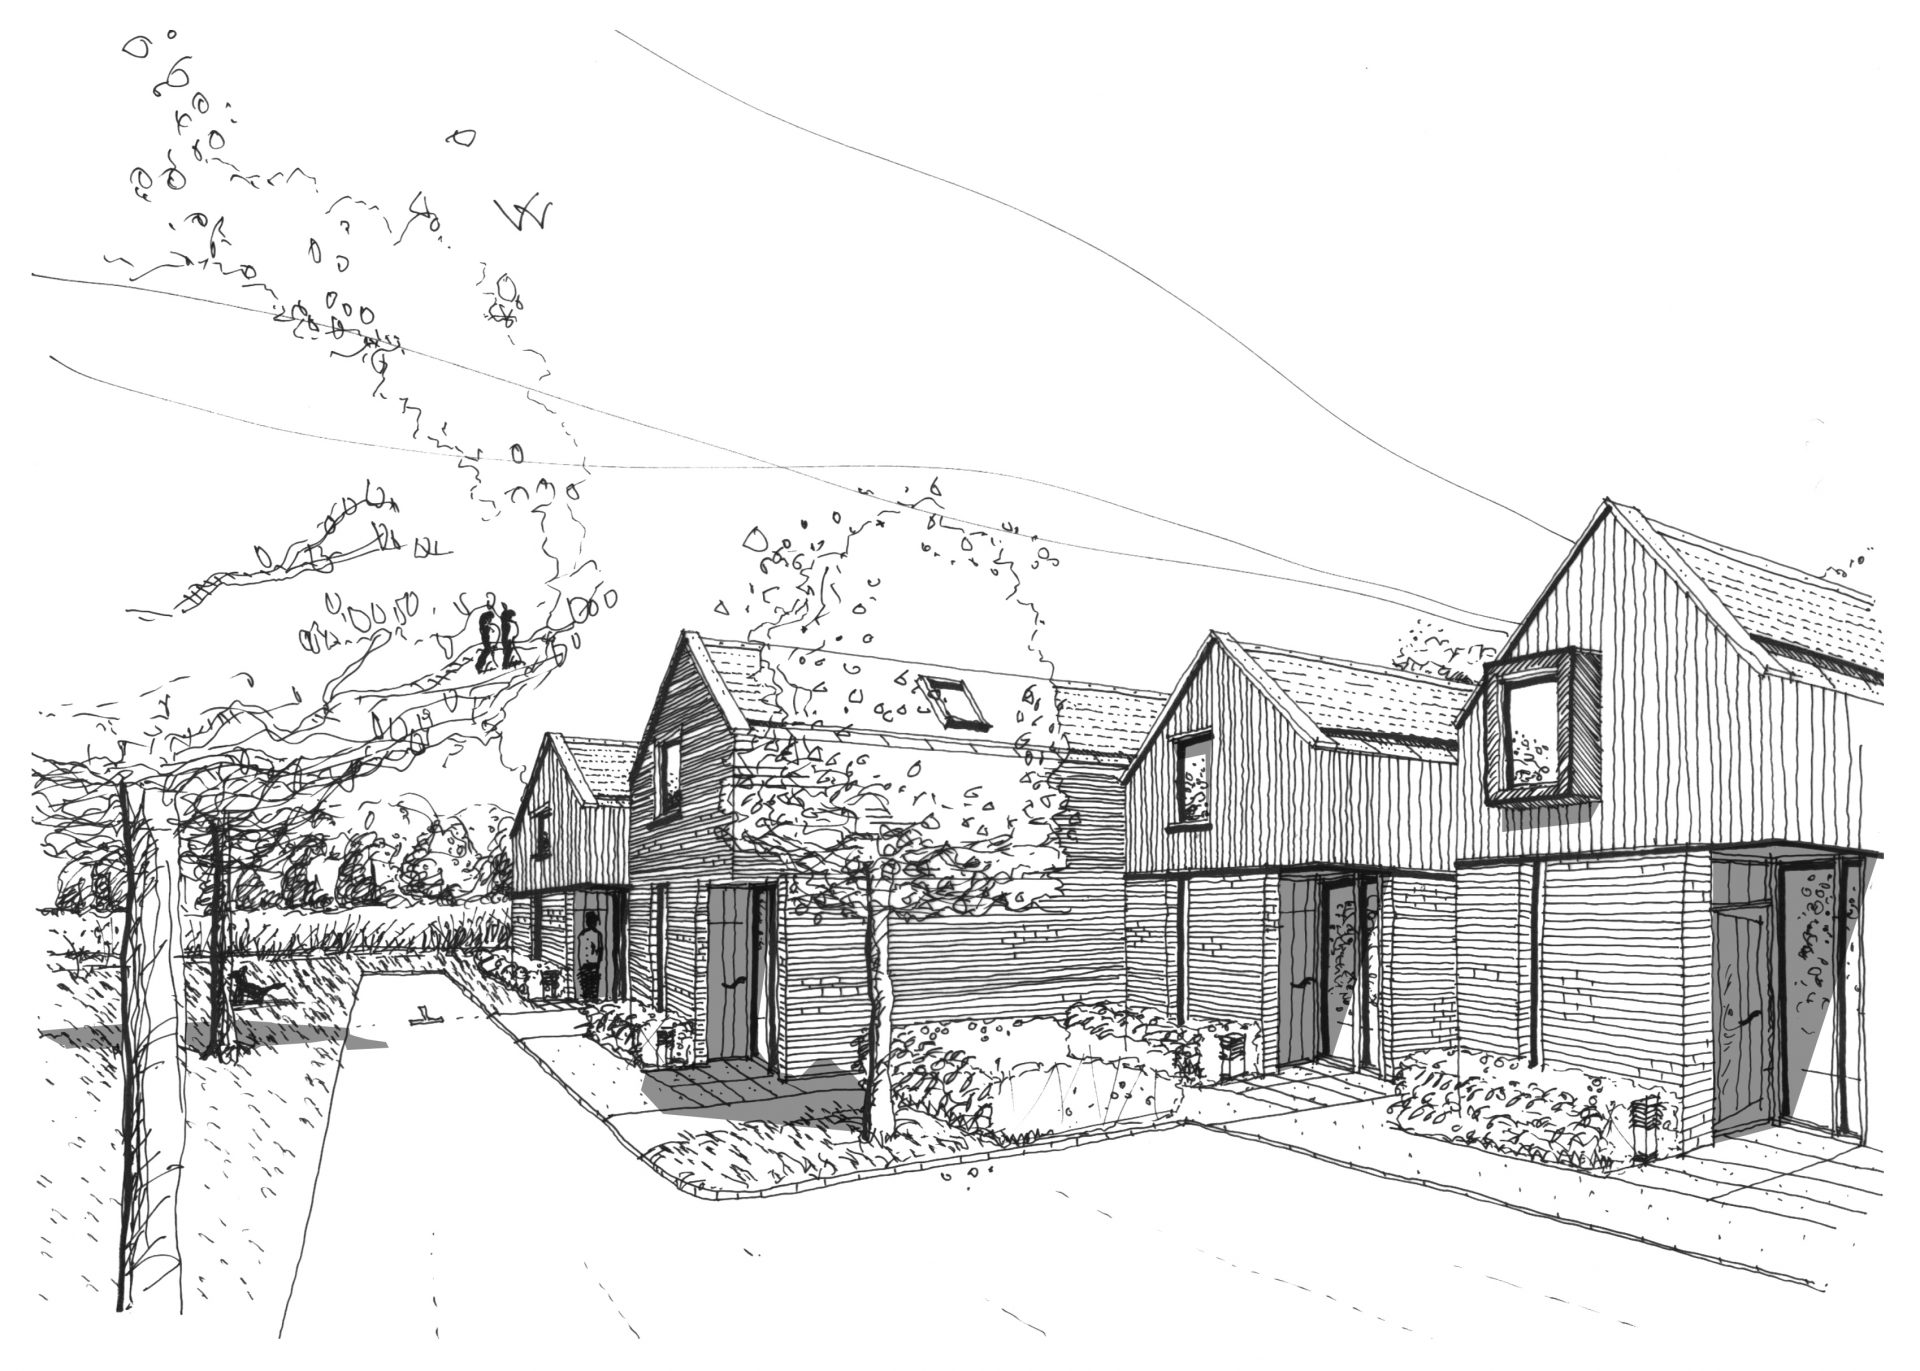 Aston Cross Housing Tewkesbury Architects Sketch